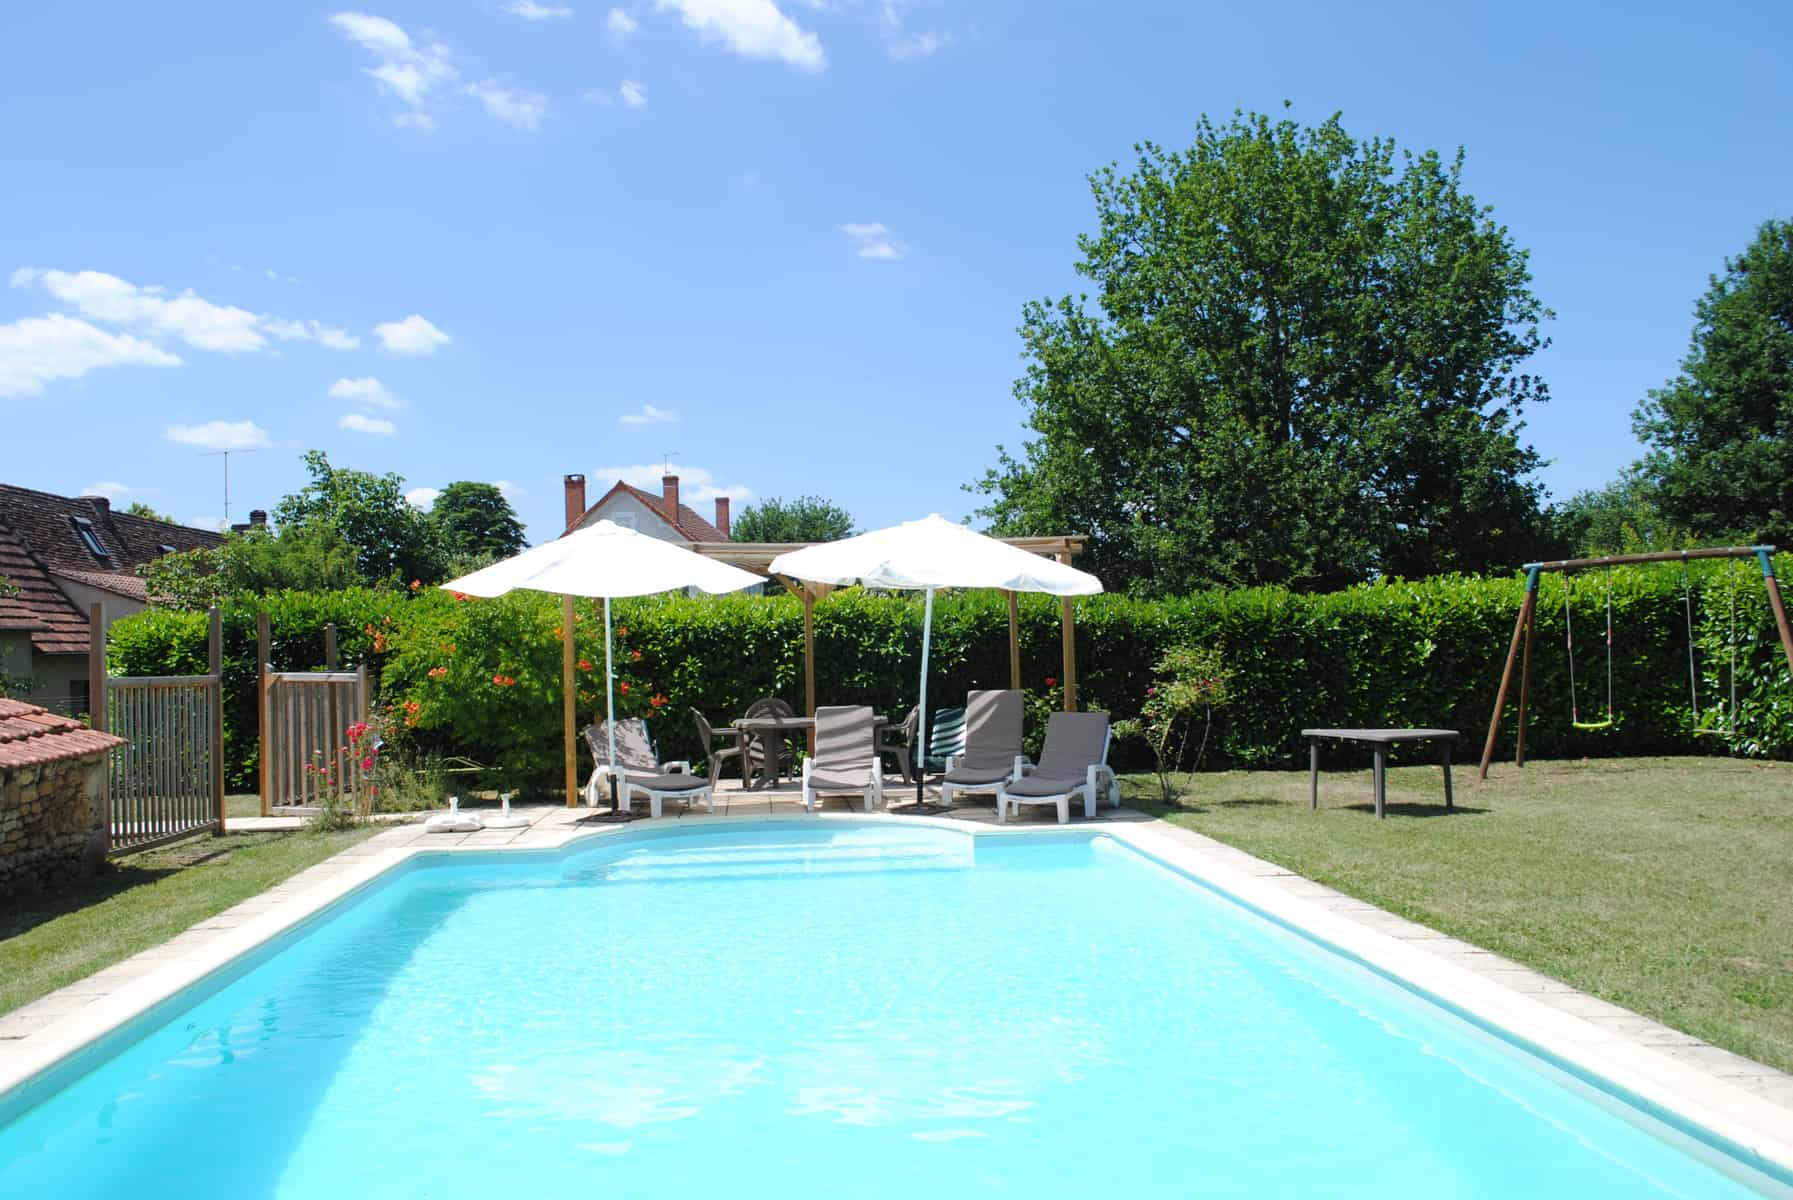 Places to stay in the Dordogne